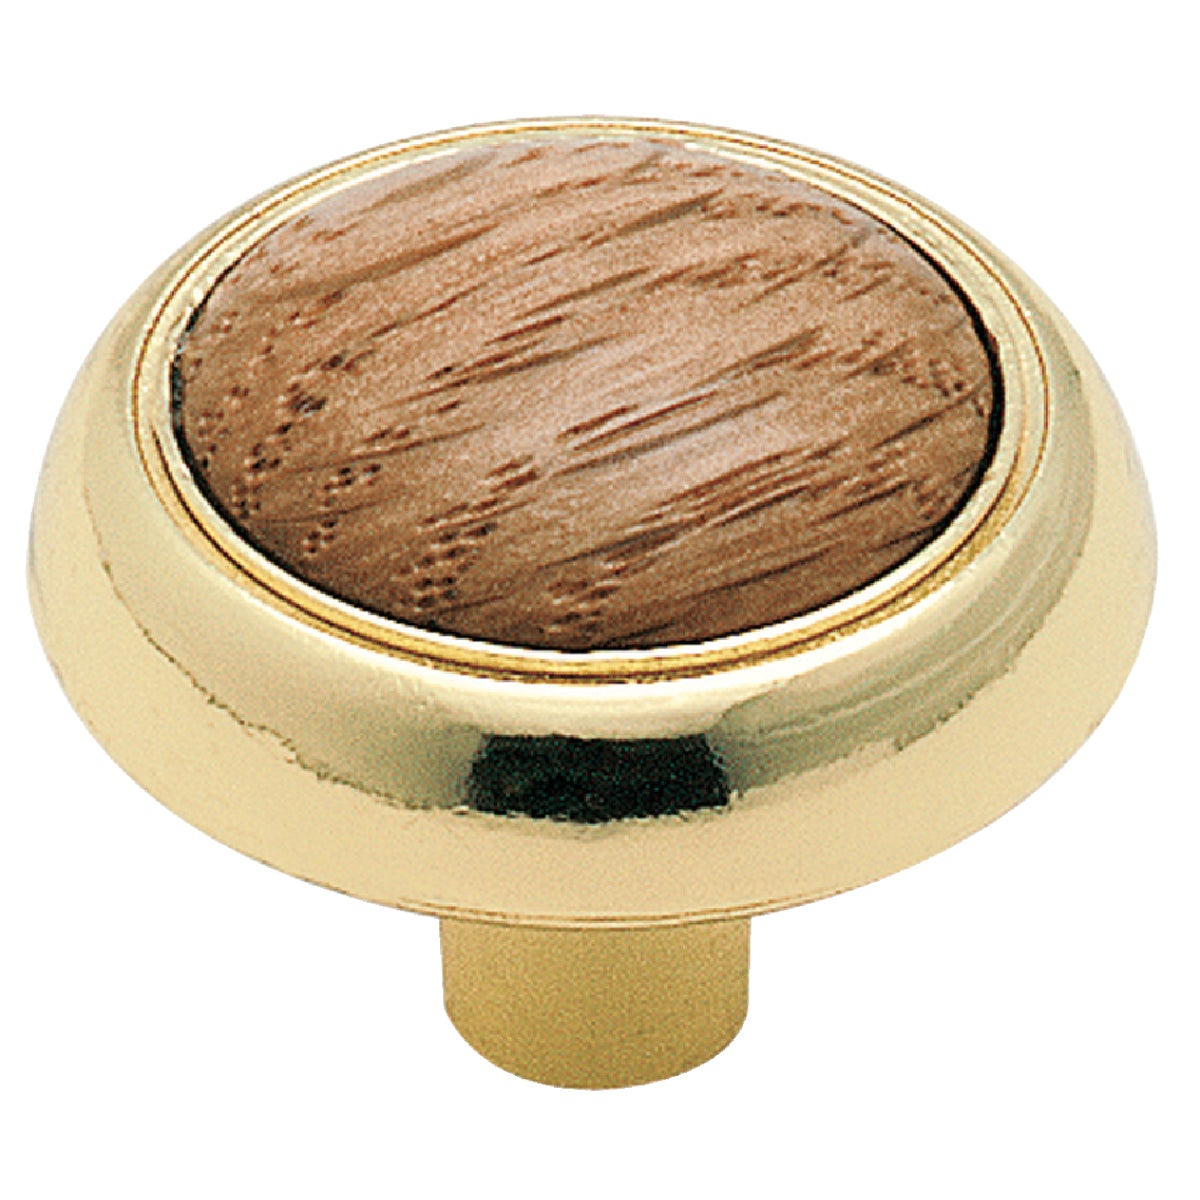 "1-1/4"" PB KNOB - 2650PB by Amerock Corporation"